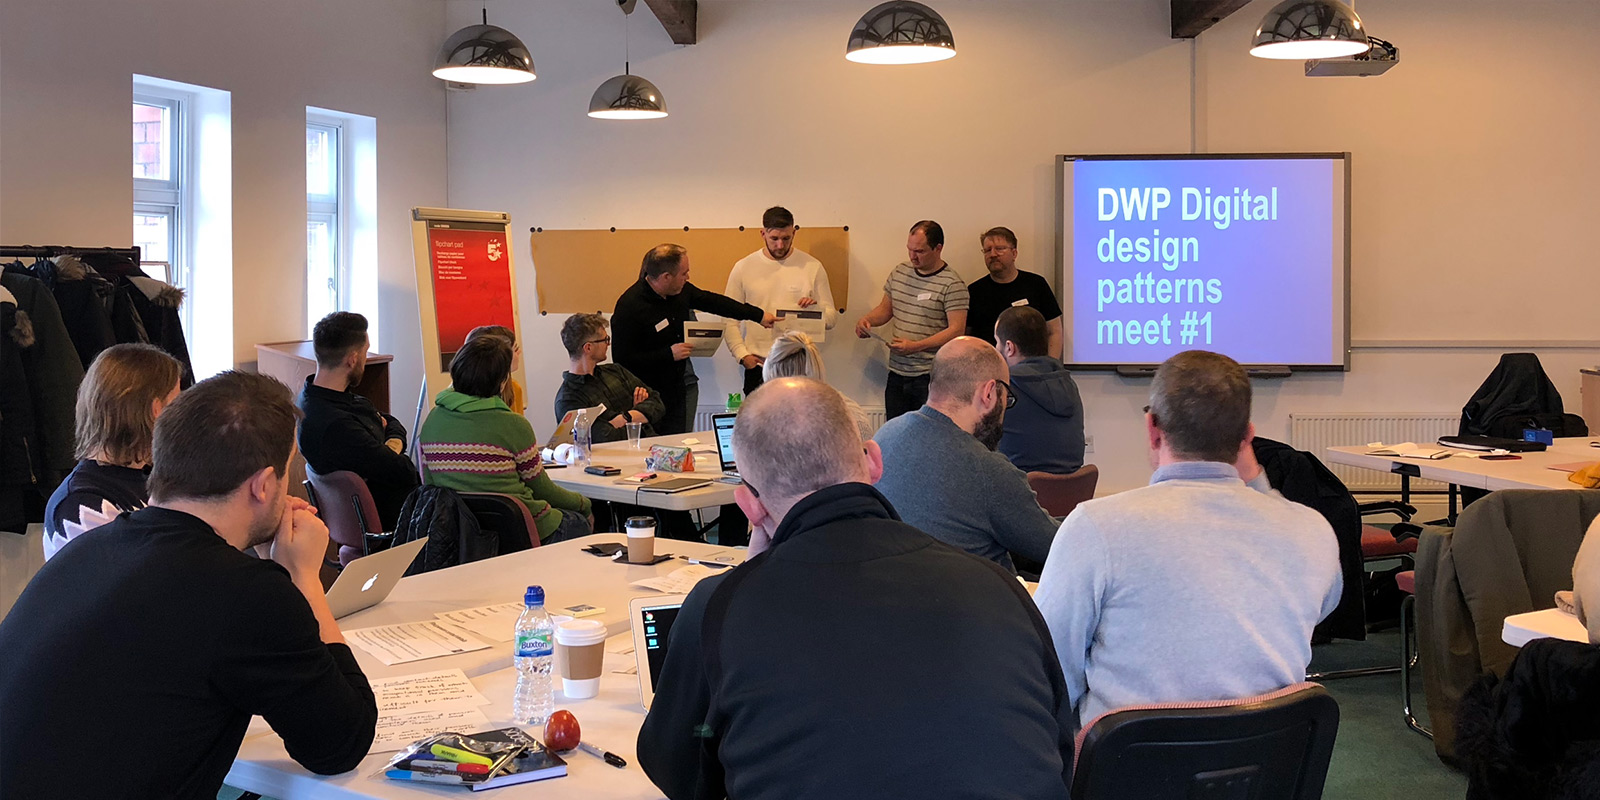 DWP Digital designers in a room listening to colleagues presenting their work